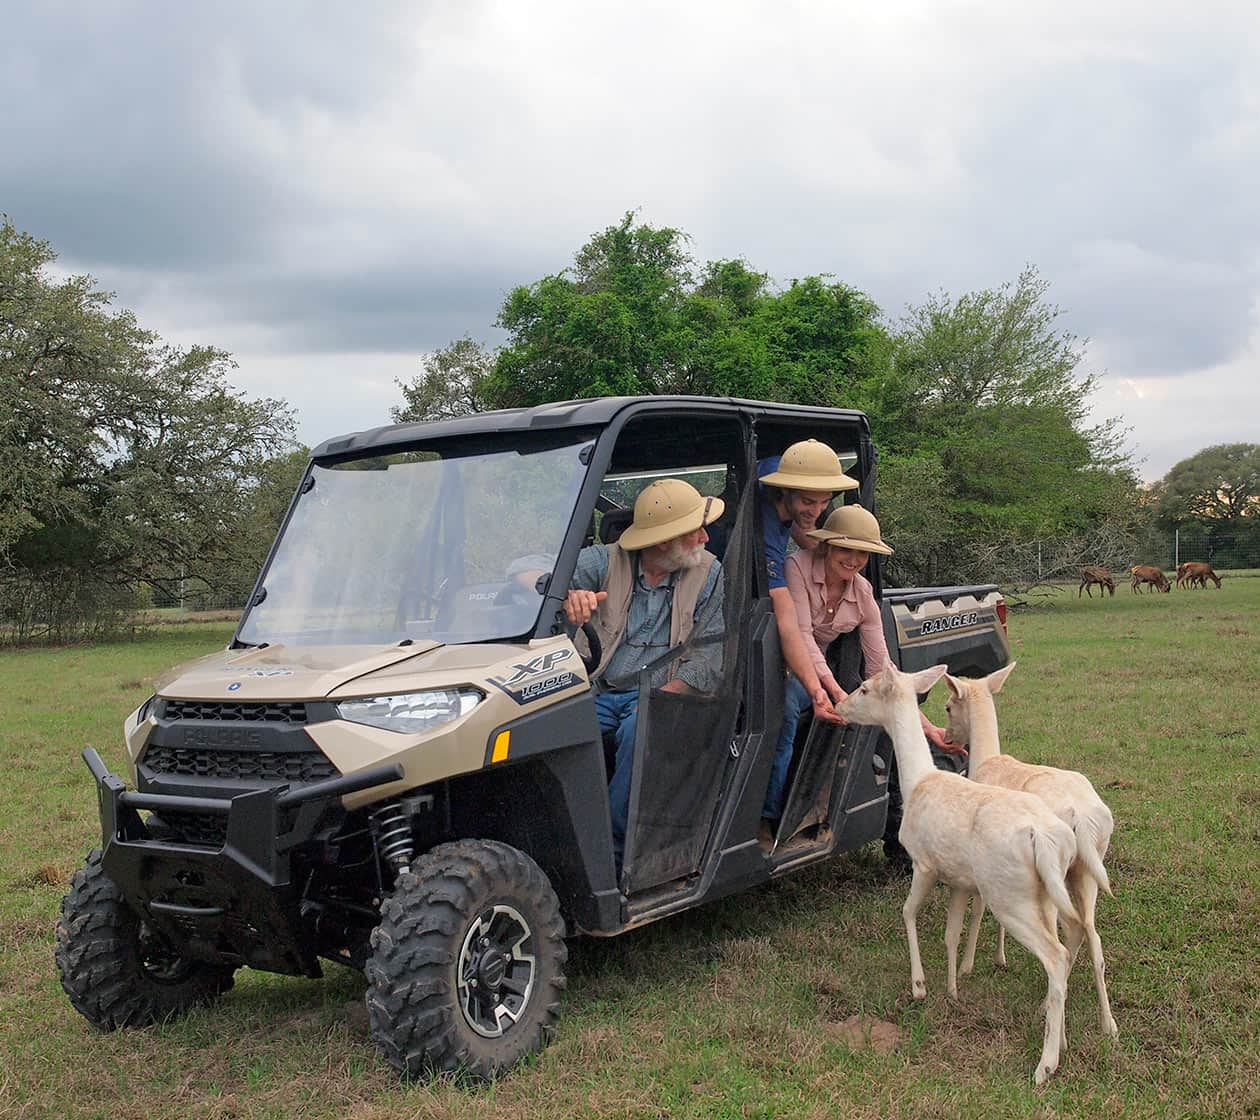 Exotic animal ranch tour in a vehicle